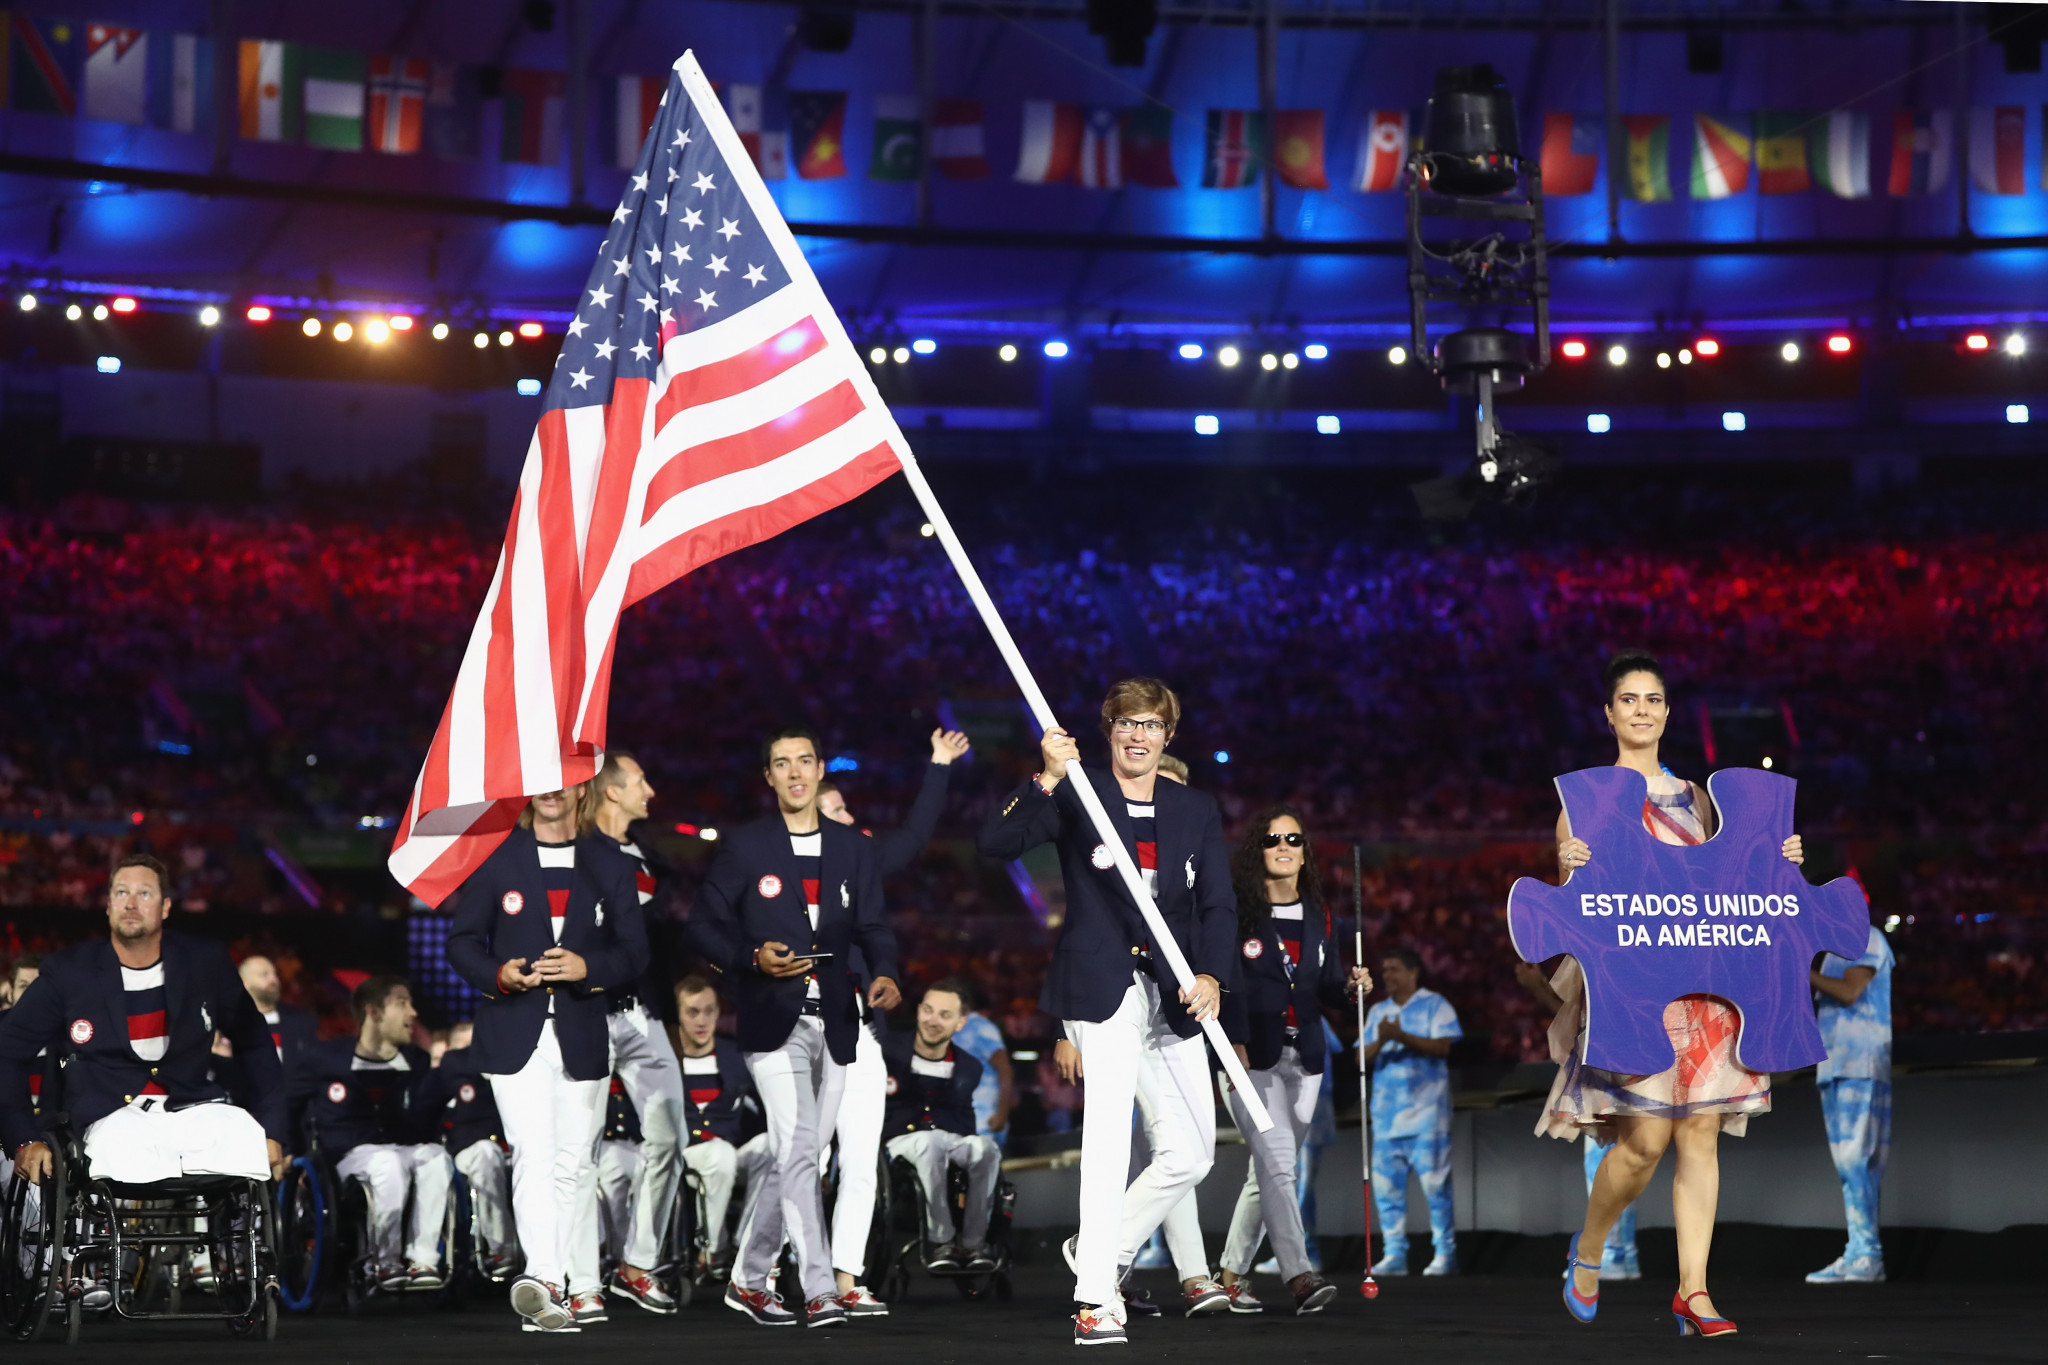 Eli Lilly and Company will support the US Olympic and Paralympic teams at Tokyo 2020 ©Getty Images